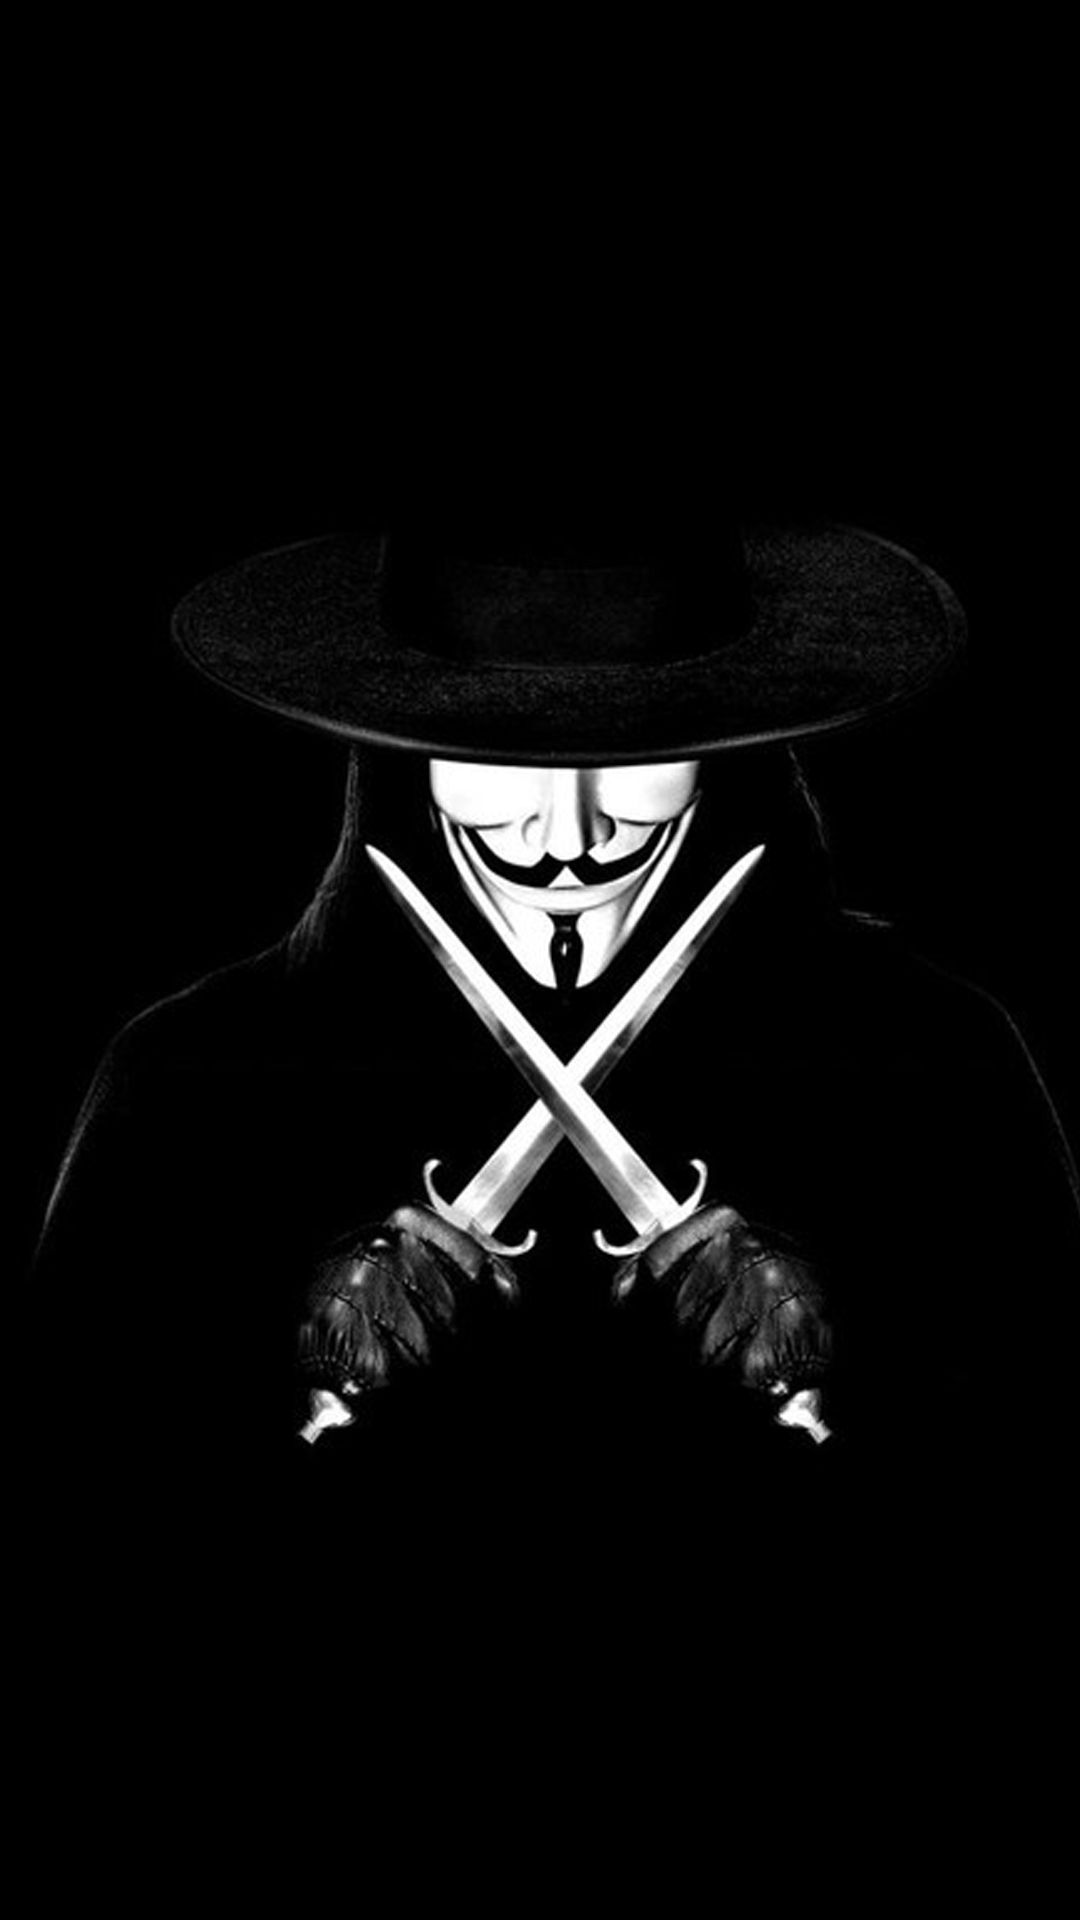 Wallpaper iphone hacker - Customize Your Iphone 6 Plus With This High Definition V For Vendetta Wallpaper From Hd Phone Wallpapers